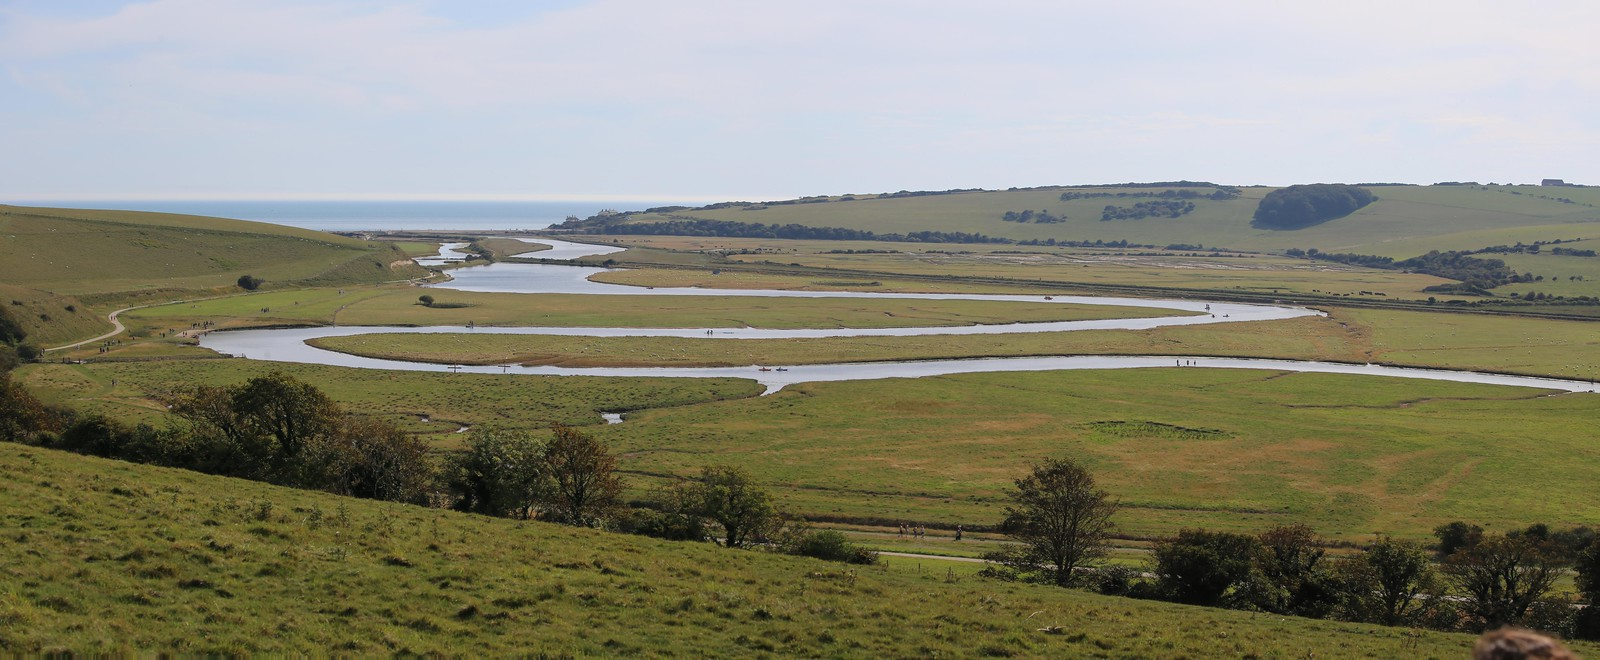 Looking towards Cuckmere Haven